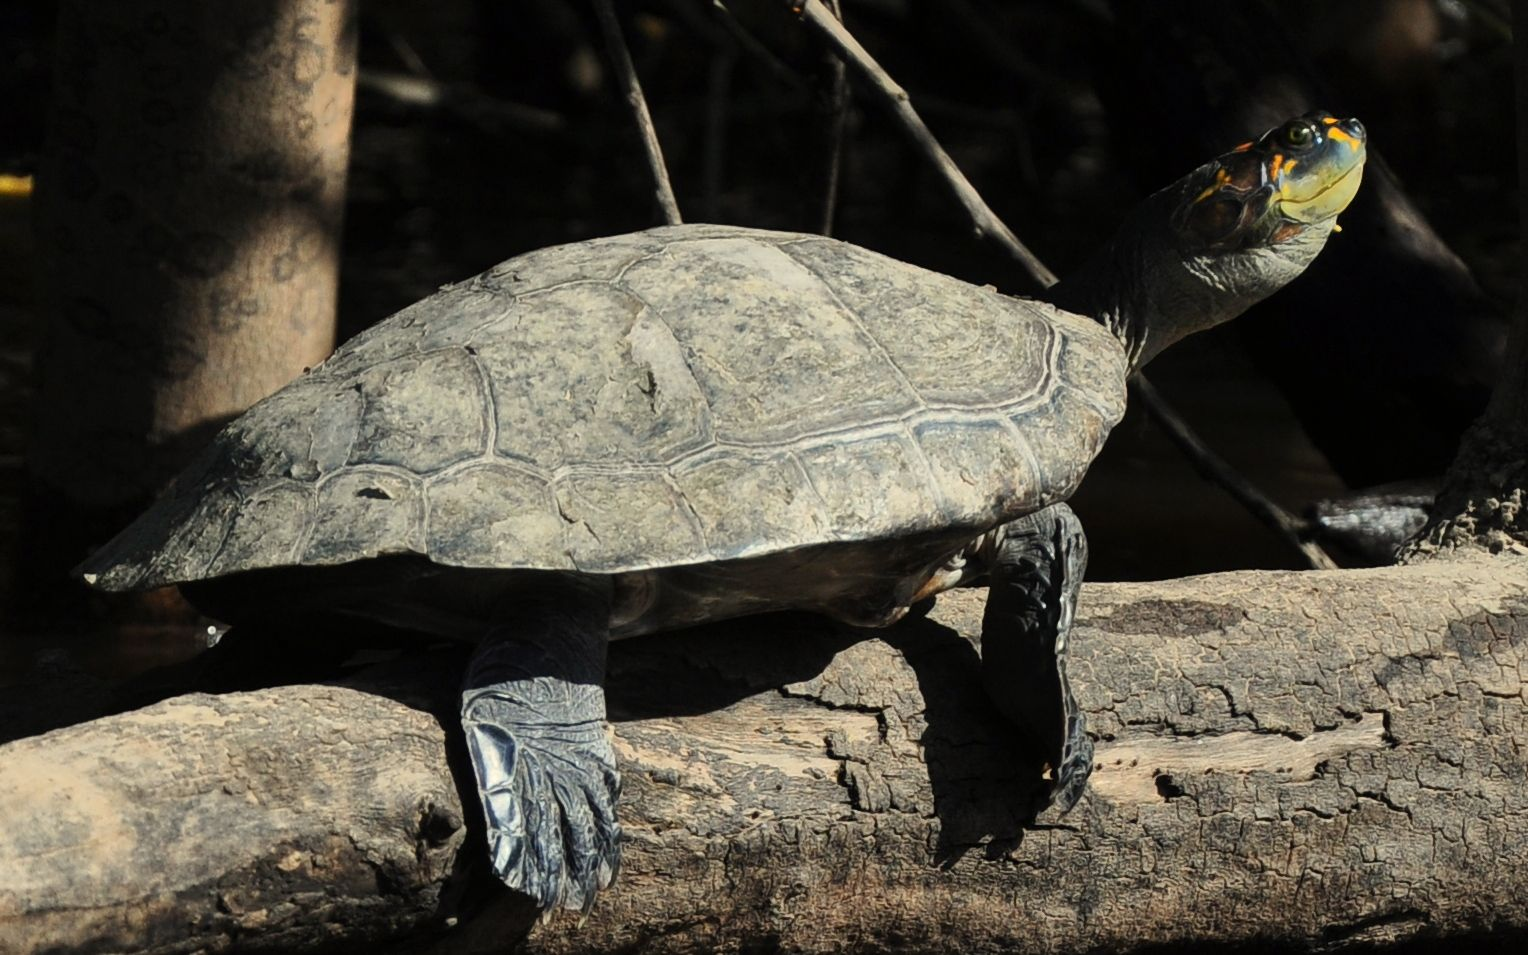 Turtles in the Amazon --- Photo taken by Esmeralda Spiteri